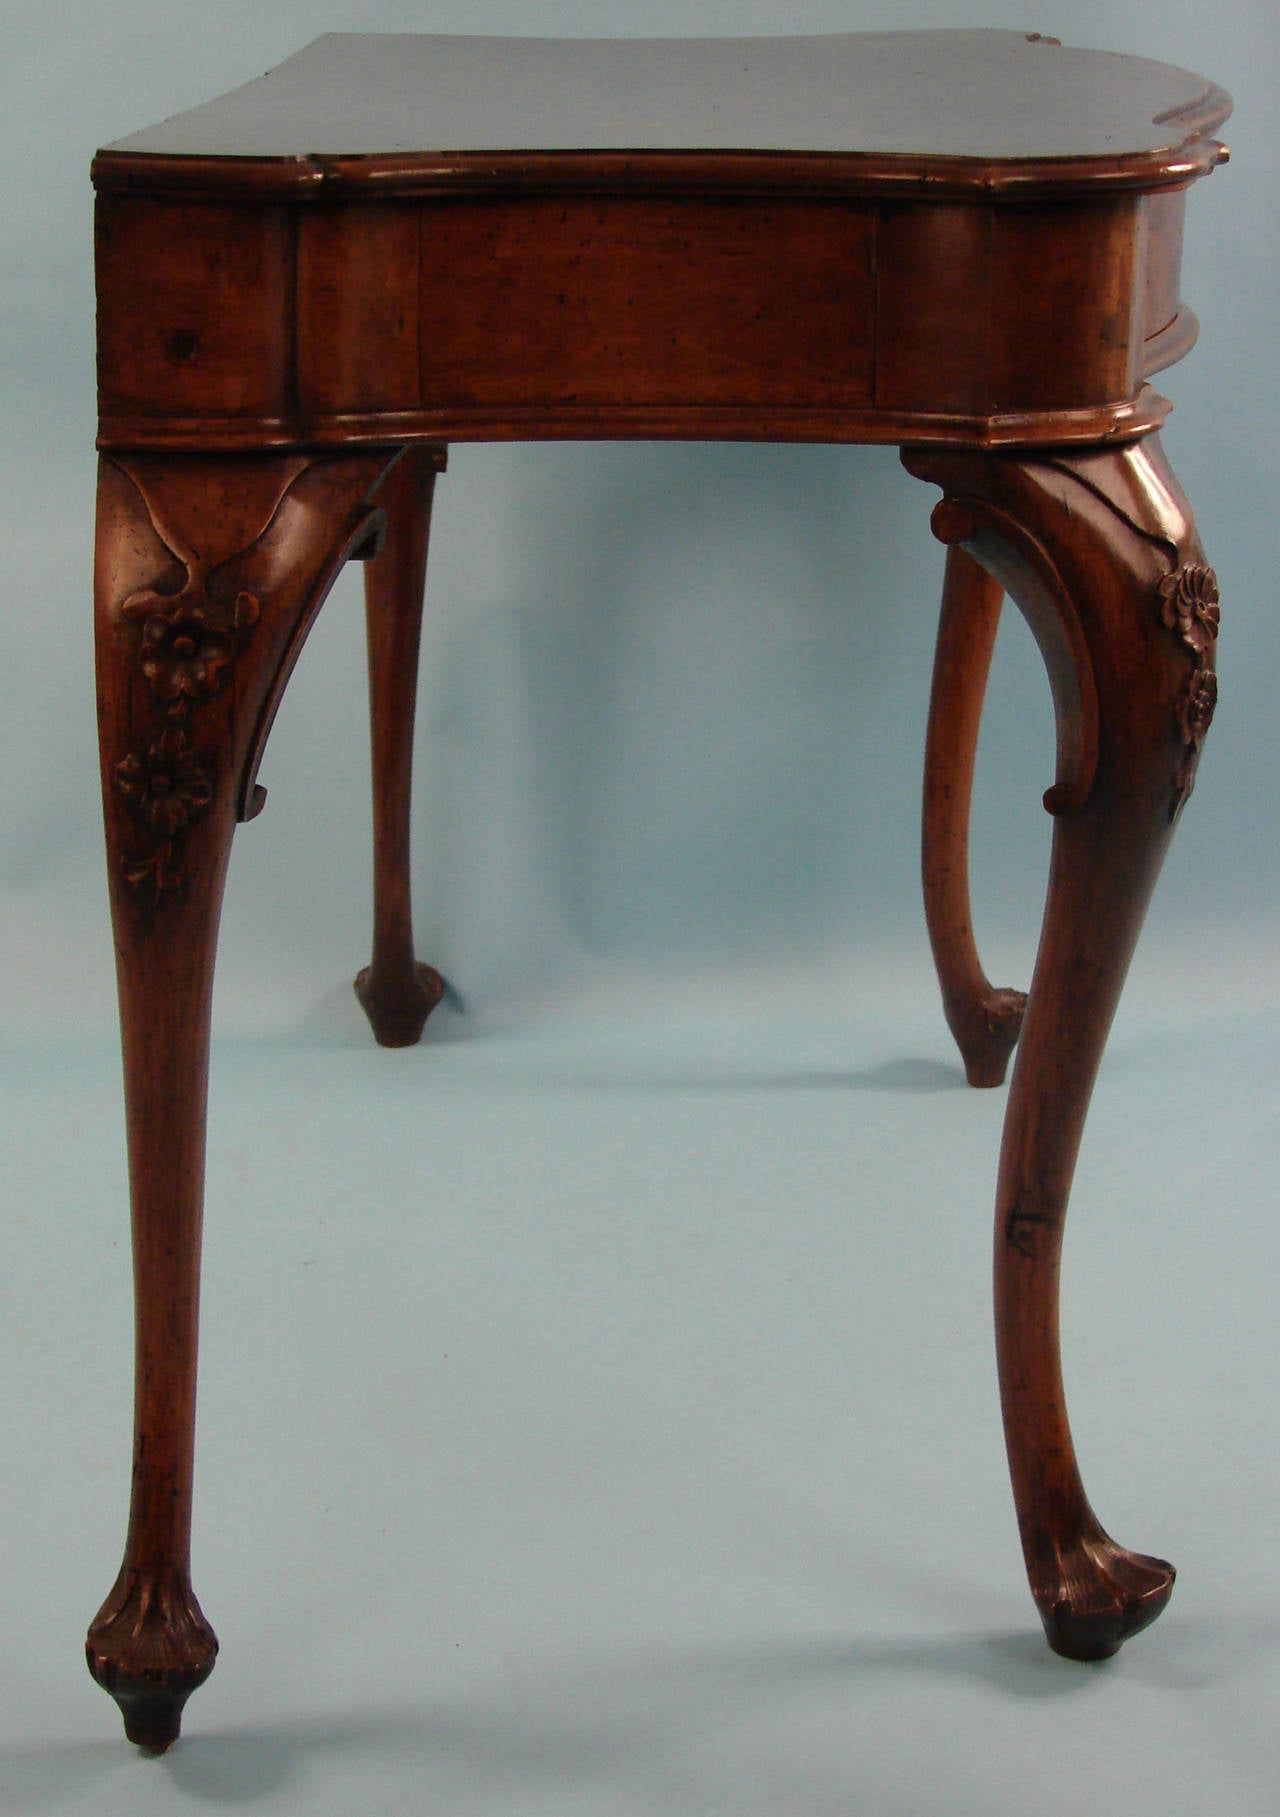 Italian Baroque Walnut Table with Drawer of Serpentine Form In Good Condition For Sale In San Francisco, CA